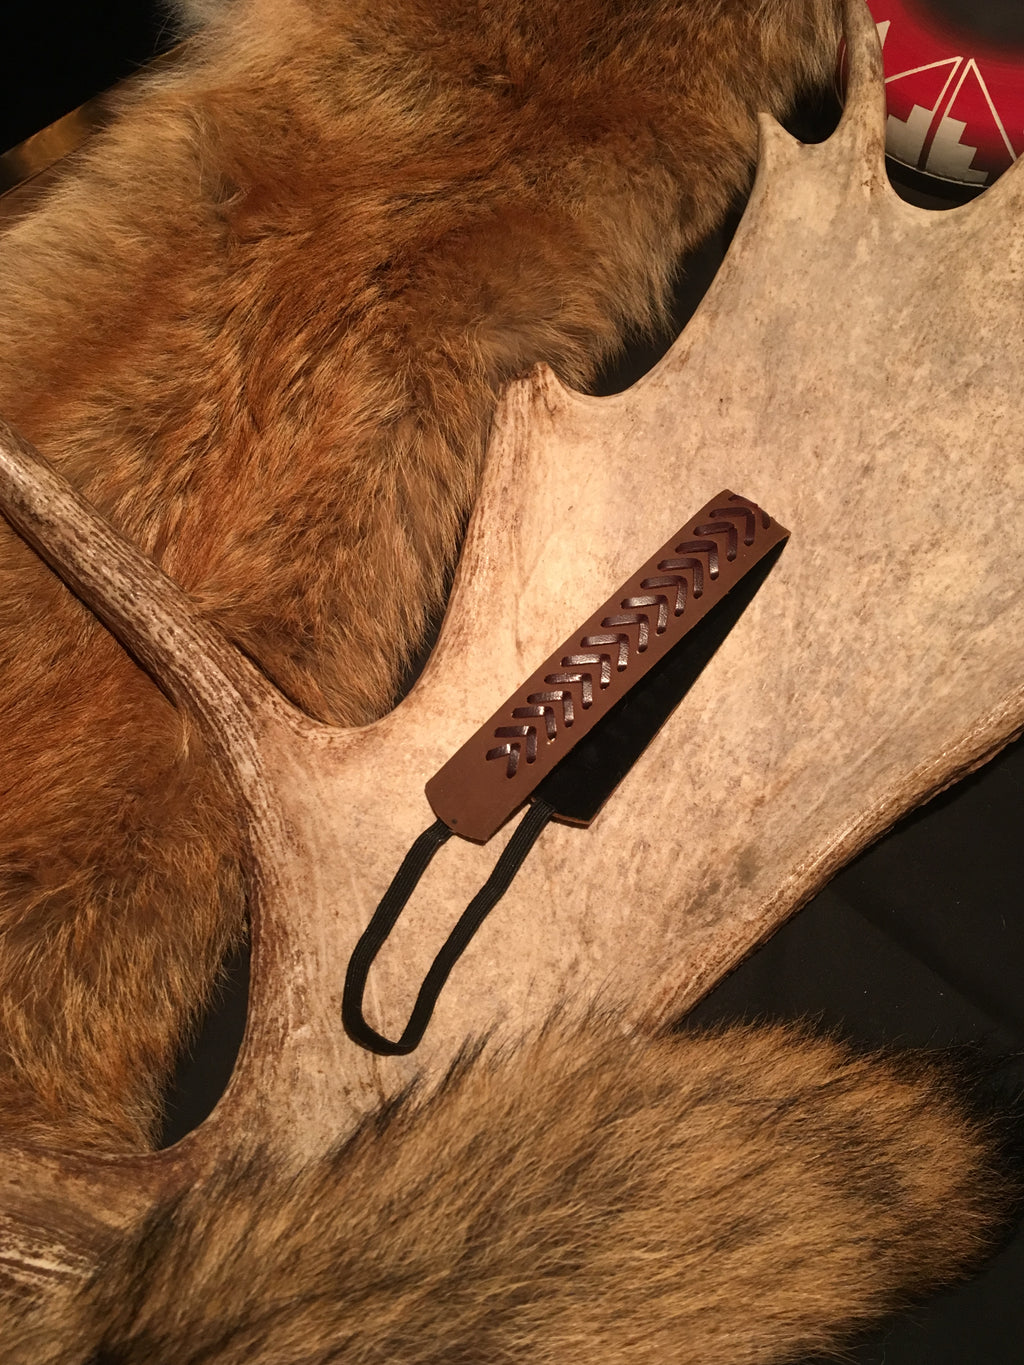 SILVERPEAK'S LEATHER STITCHED HEADBAND